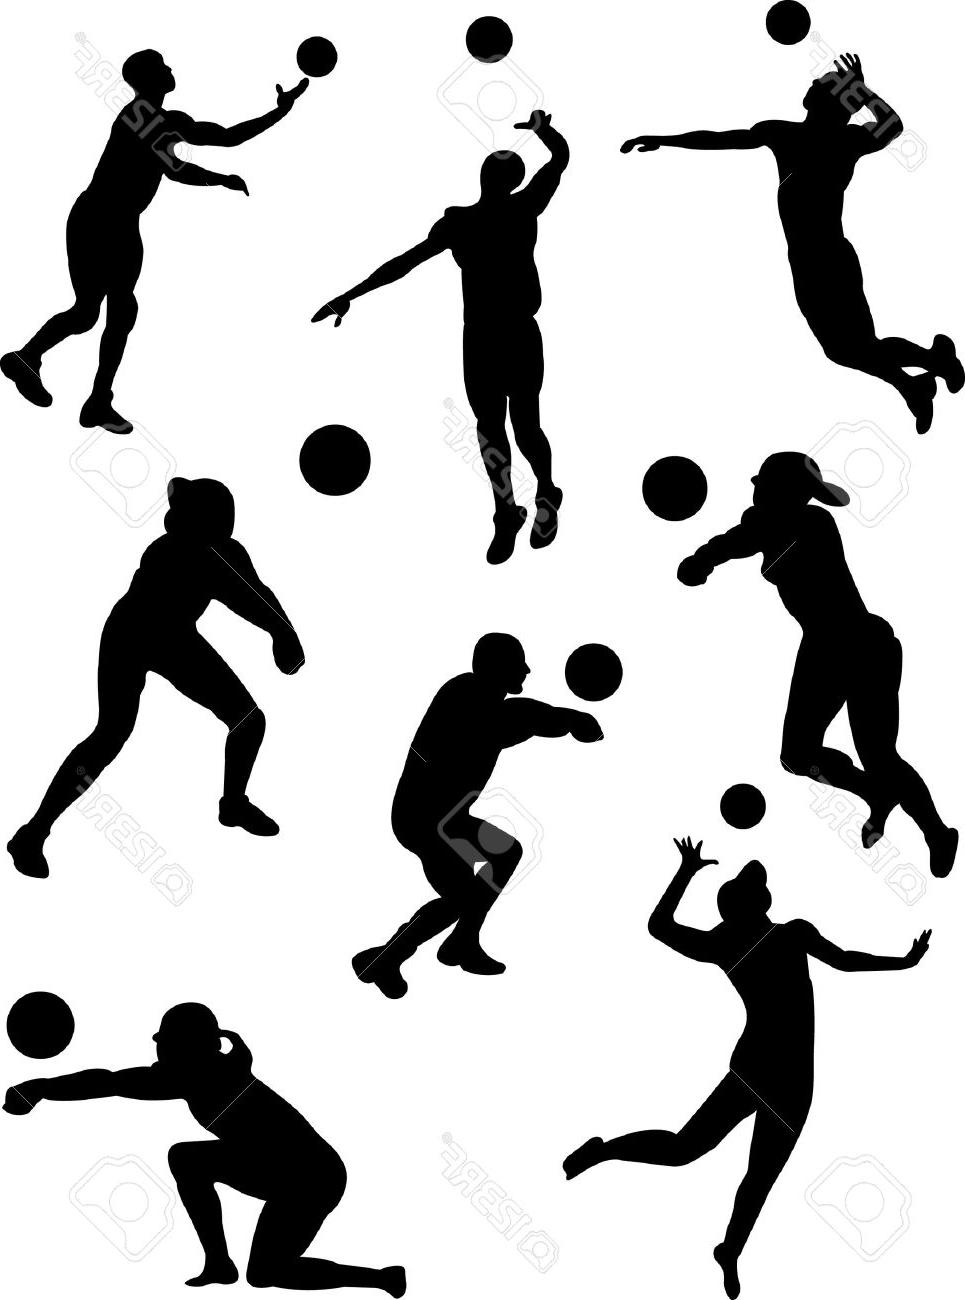 965x1300 Best Hd Volleyball Serve Silhouette Clipart File Free